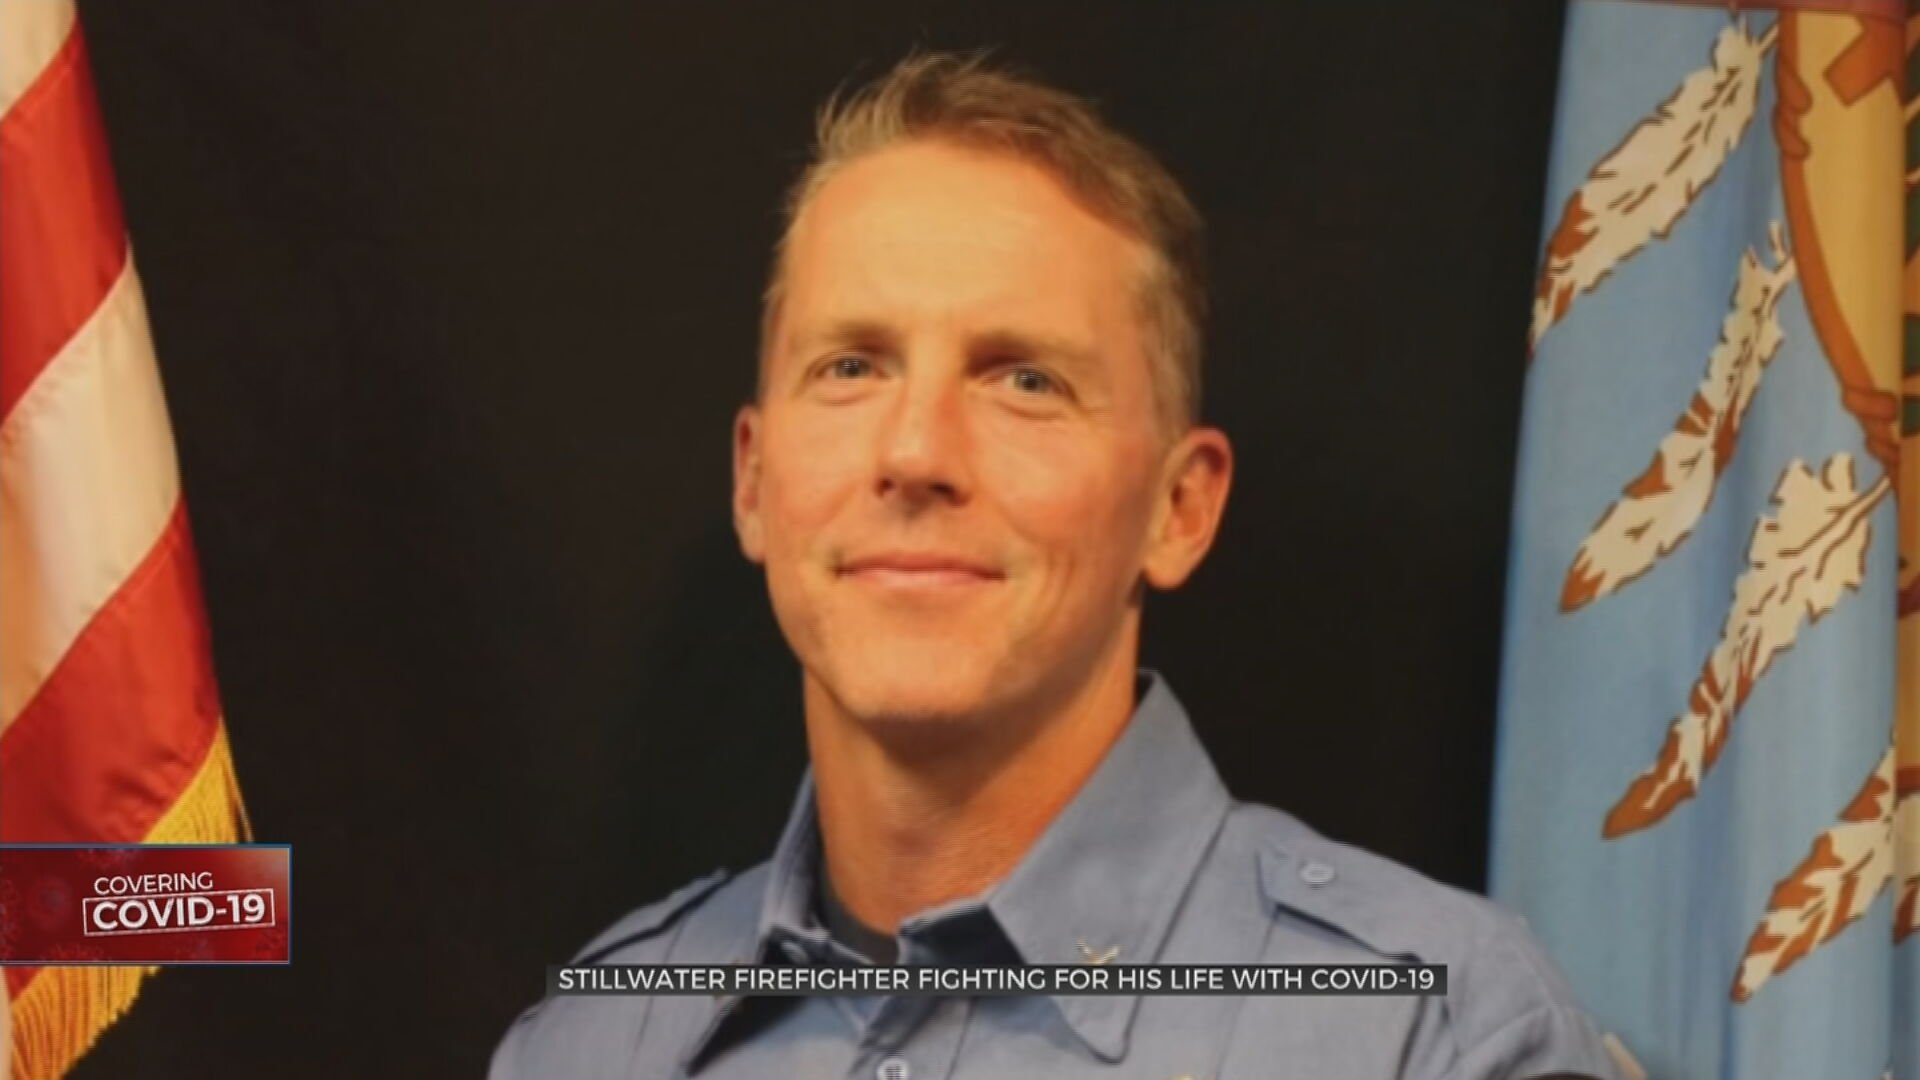 Stillwater Firefighter in Hospital With COVID-19, Community Asks for Prayers